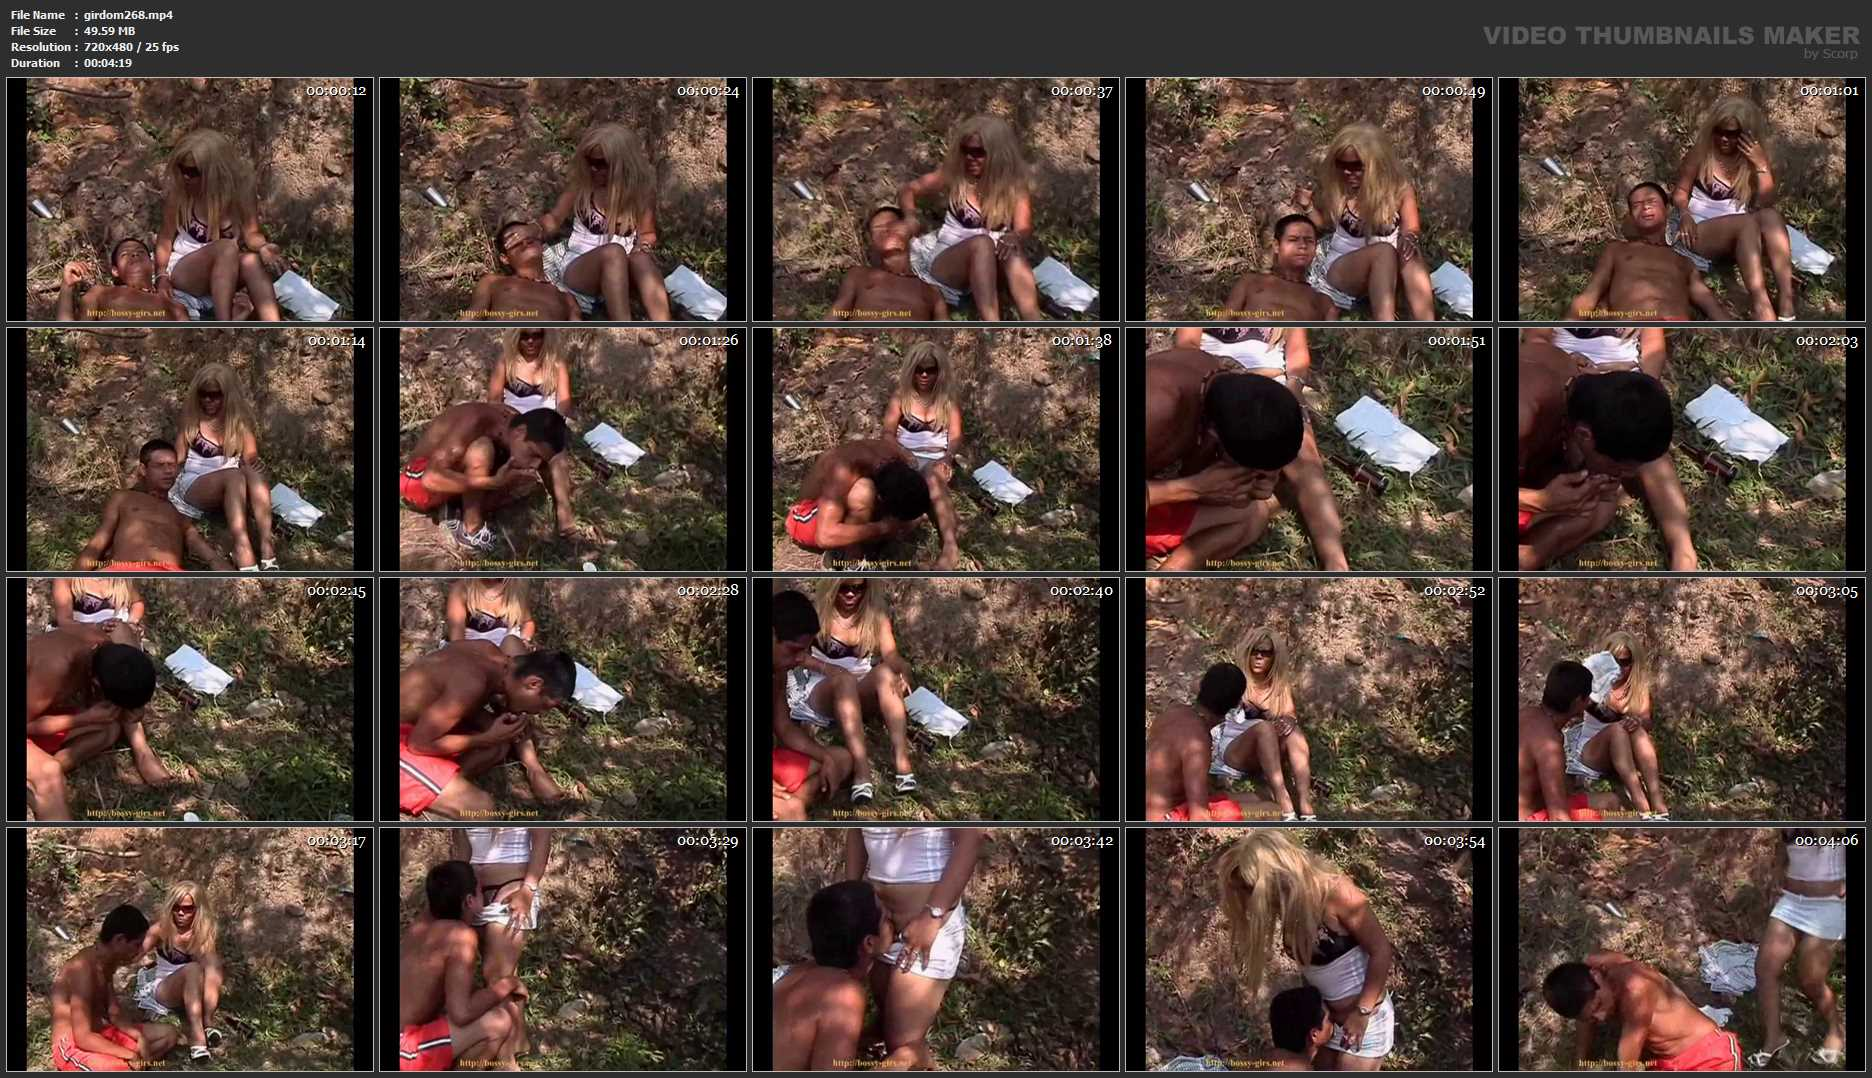 Peasants 03 Foot adoration and crotch kissing for rude girl - BOSSY-GIRLS / GIRLSDOMINATION - SD/480p/MP4